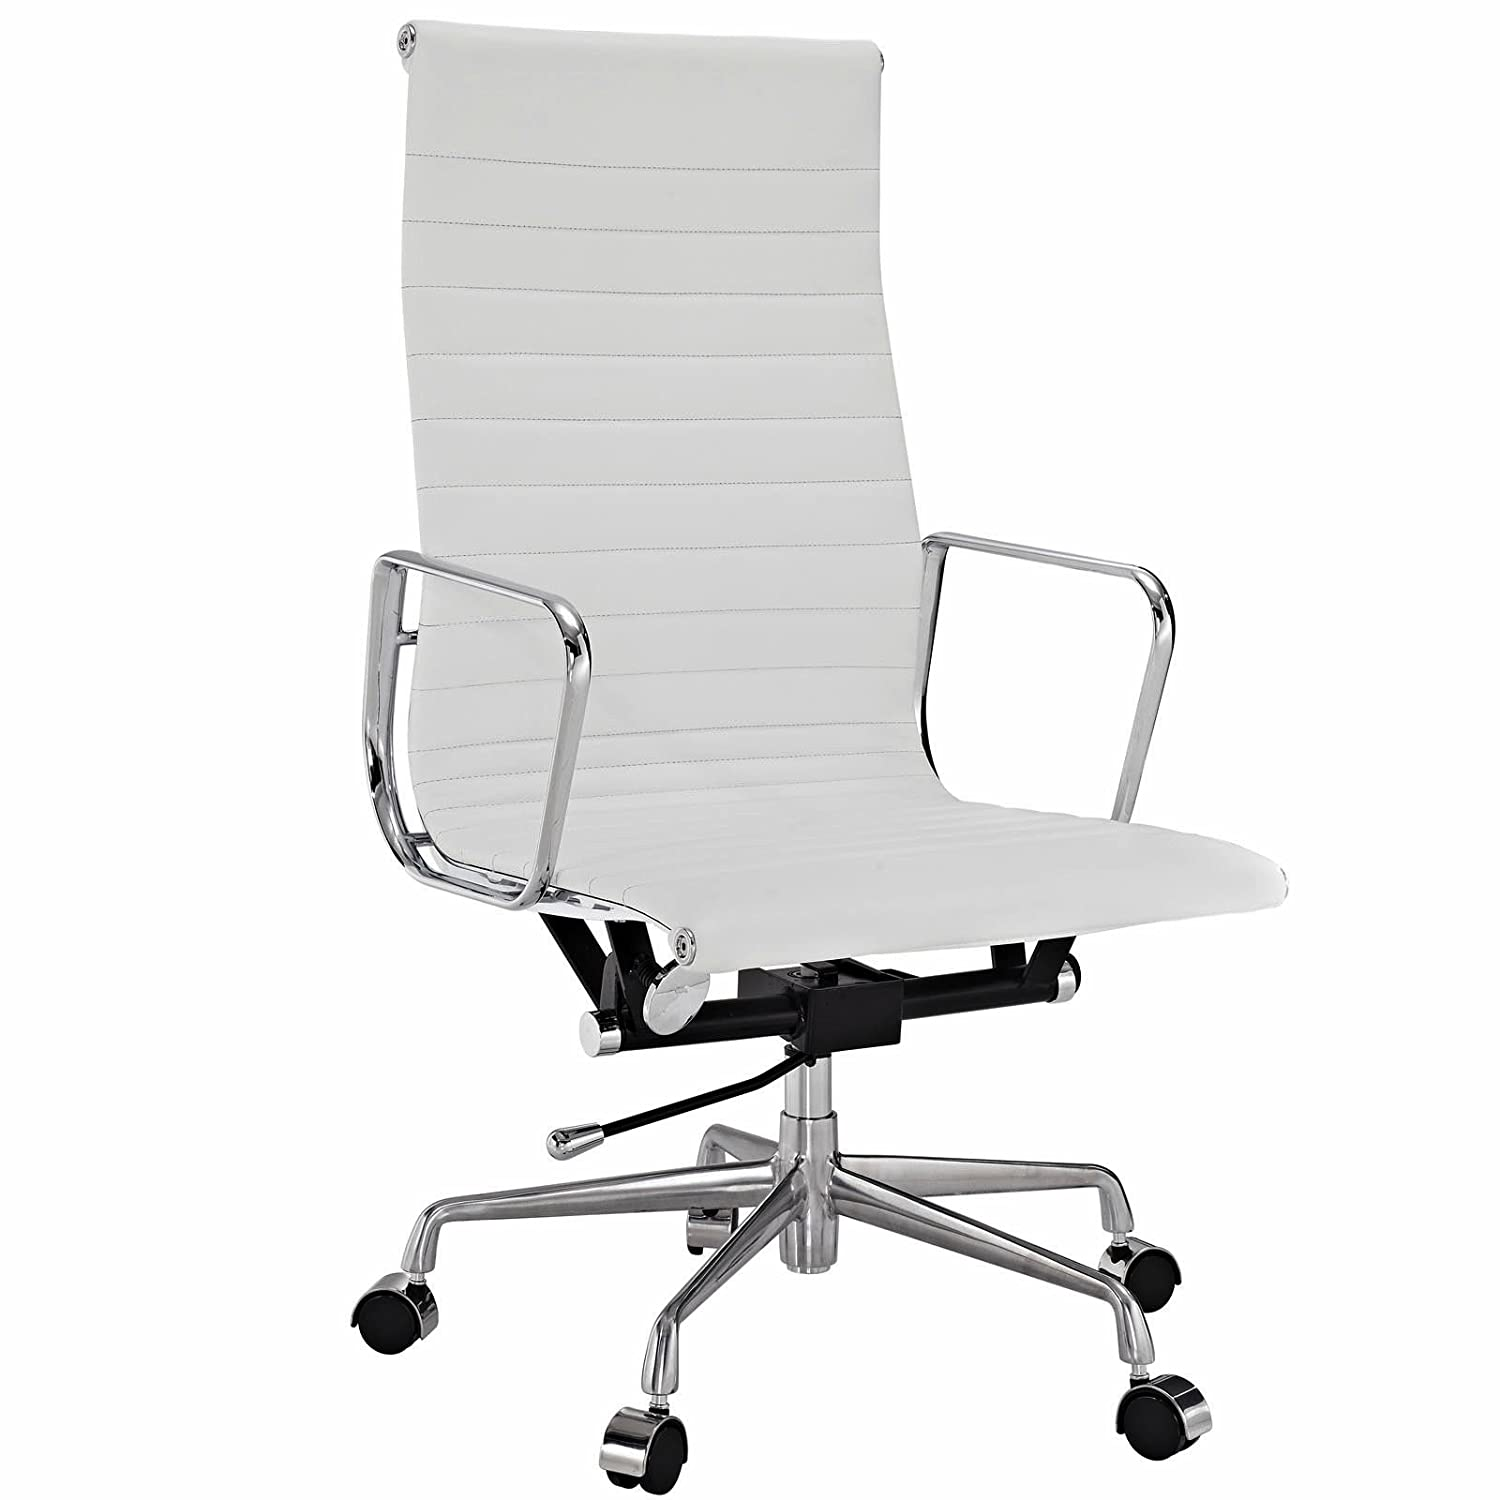 Eames office chair replica Desk Amazoncom Eames Style Aluminum Group Executive Office Chair Reproduction Leather White Musical Instruments Amazoncom Amazoncom Eames Style Aluminum Group Executive Office Chair